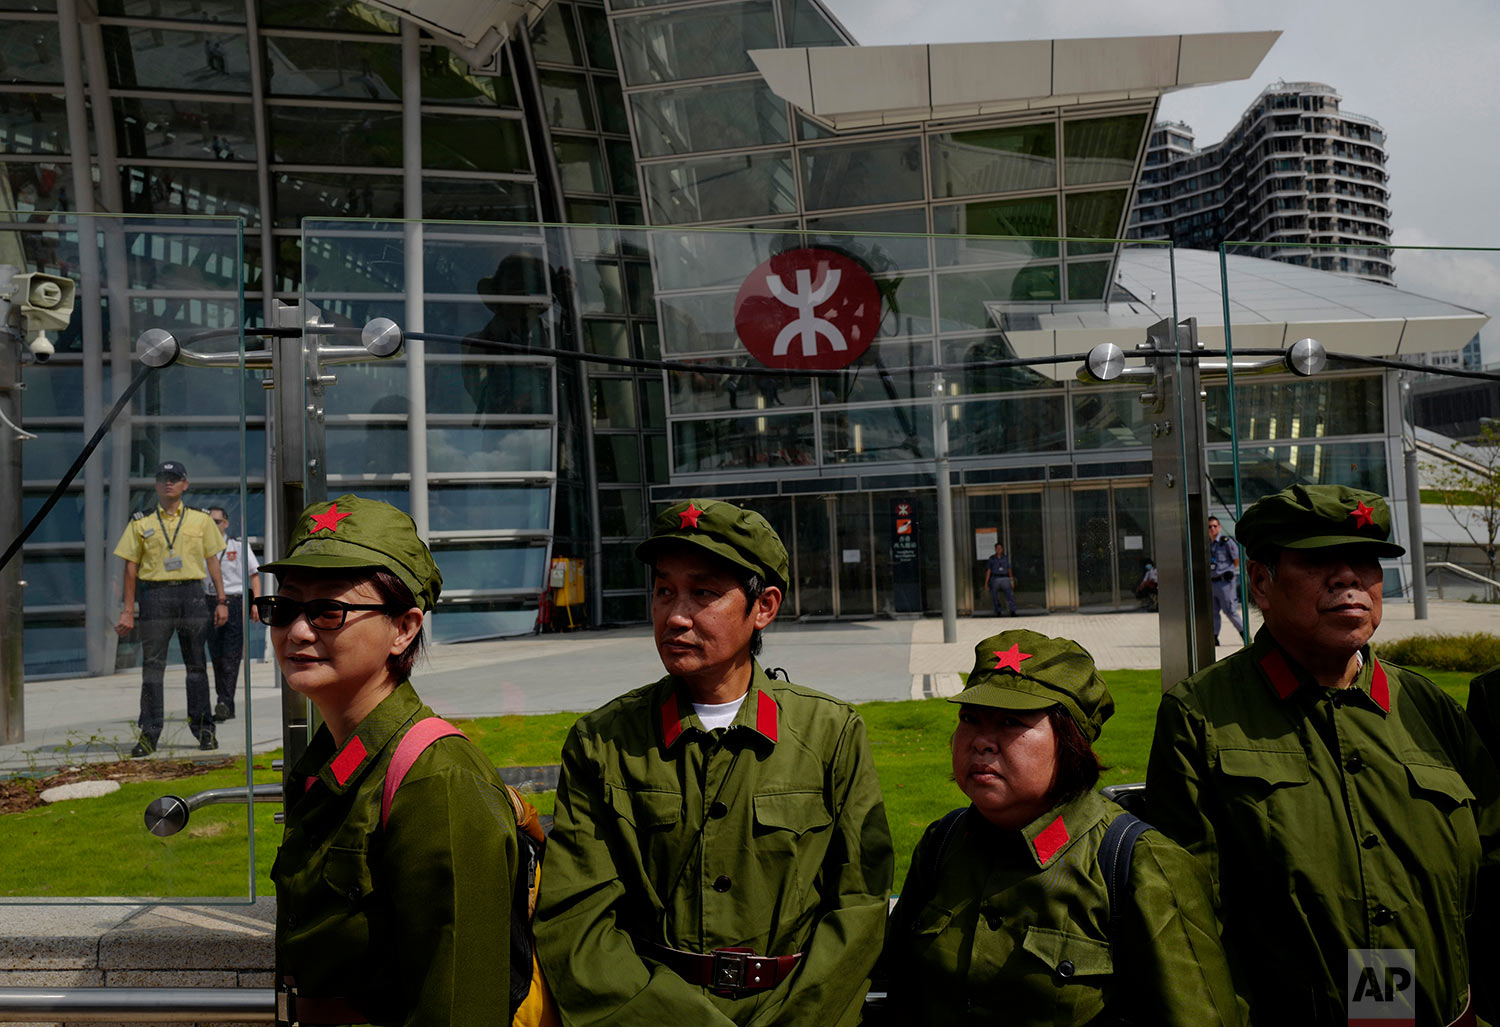 Protesters dress as People's Liberation Army (PLA) during a protest outside the Western Kowloon Station against the opening ceremony of the Hong Kong Express Rail Link in Hong Kong, Sept. 22, 2018. (AP Photo/Vincent Yu)